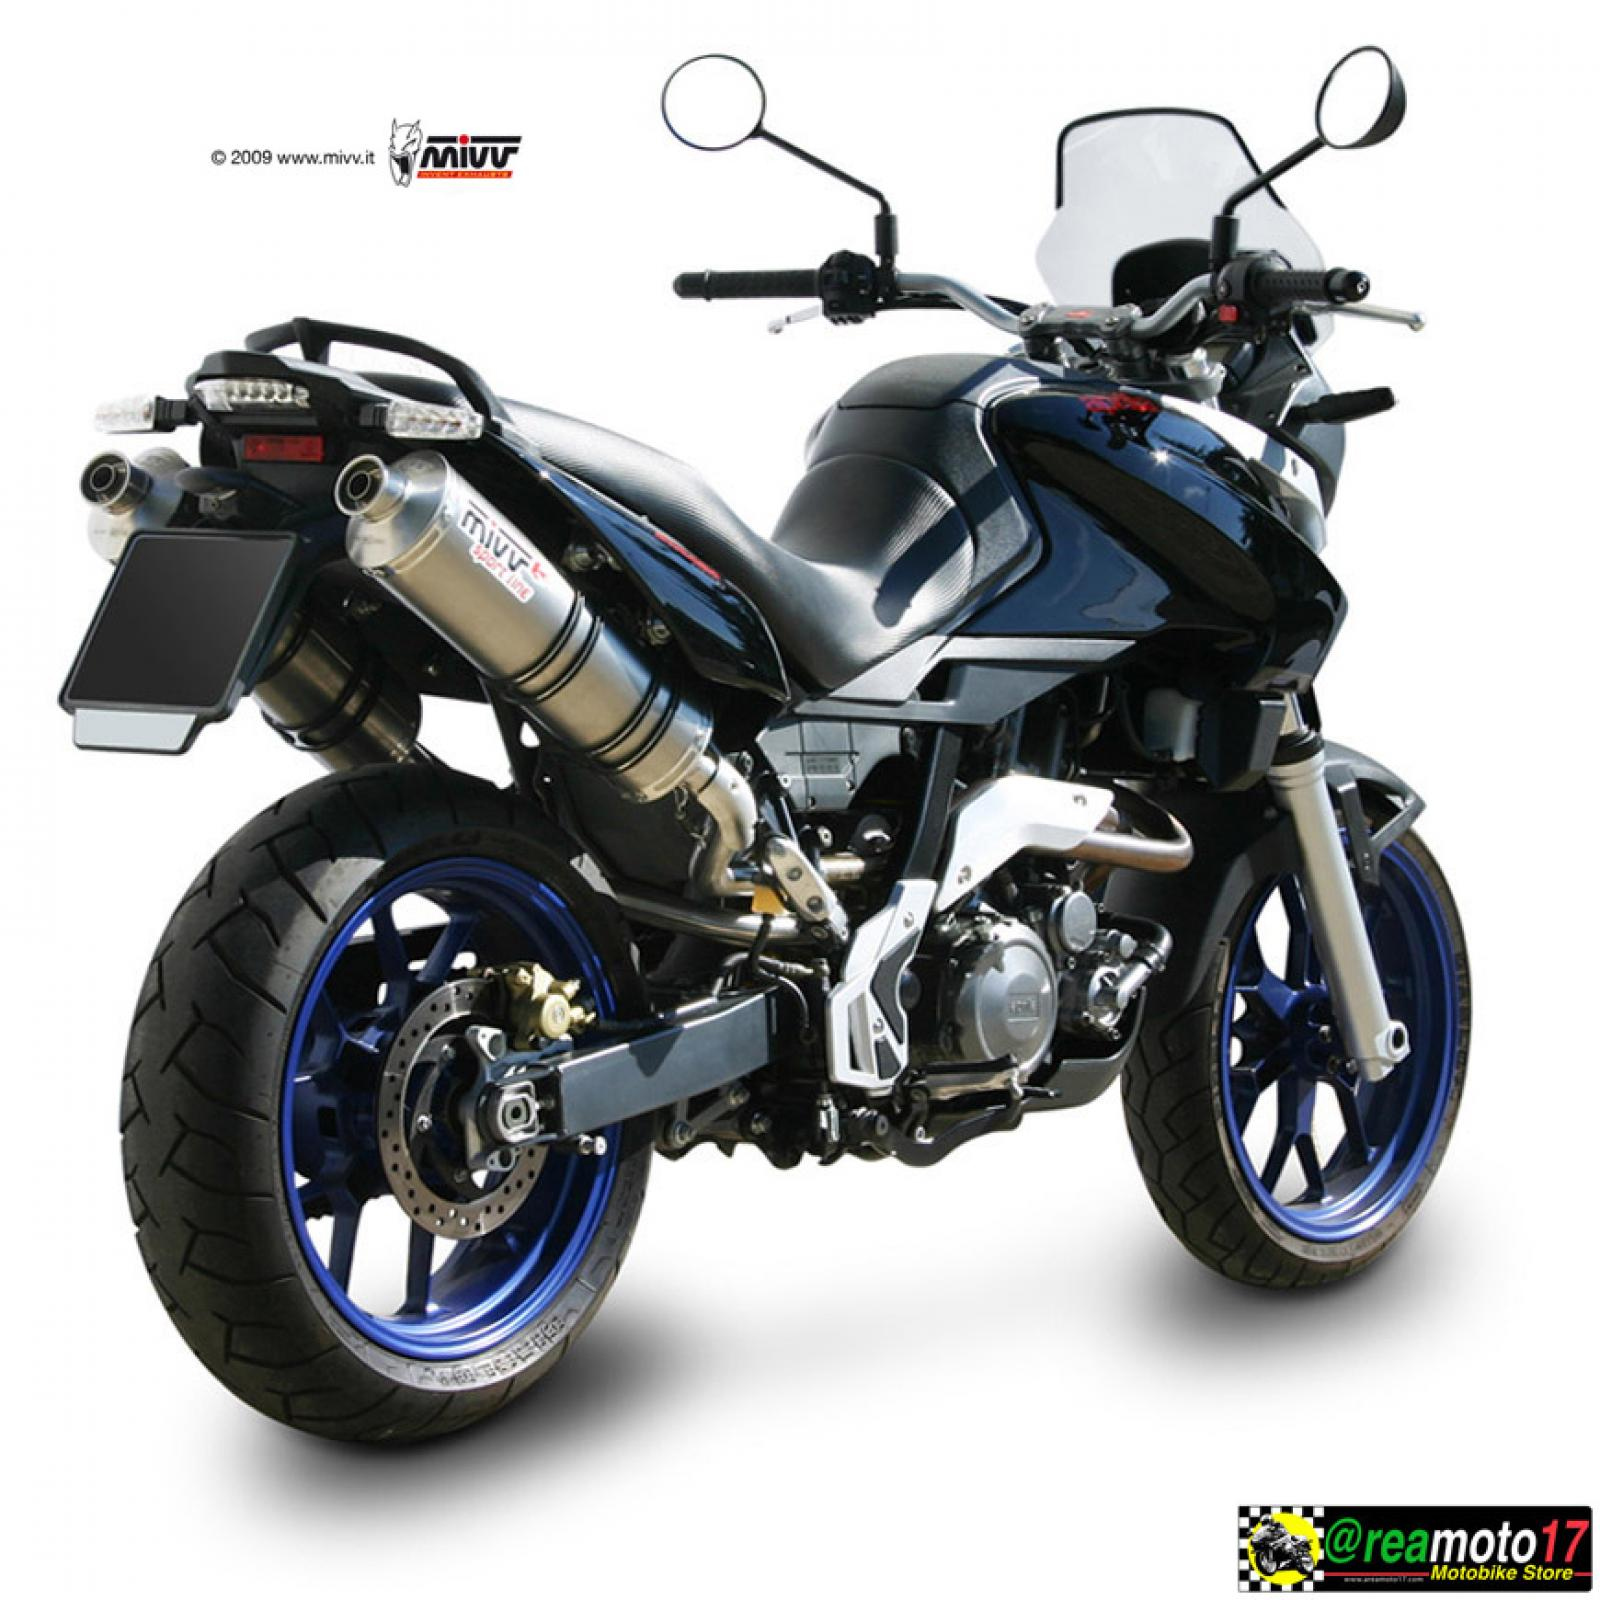 aprilia pegaso 650 strada pics specs and list of seriess. Black Bedroom Furniture Sets. Home Design Ideas